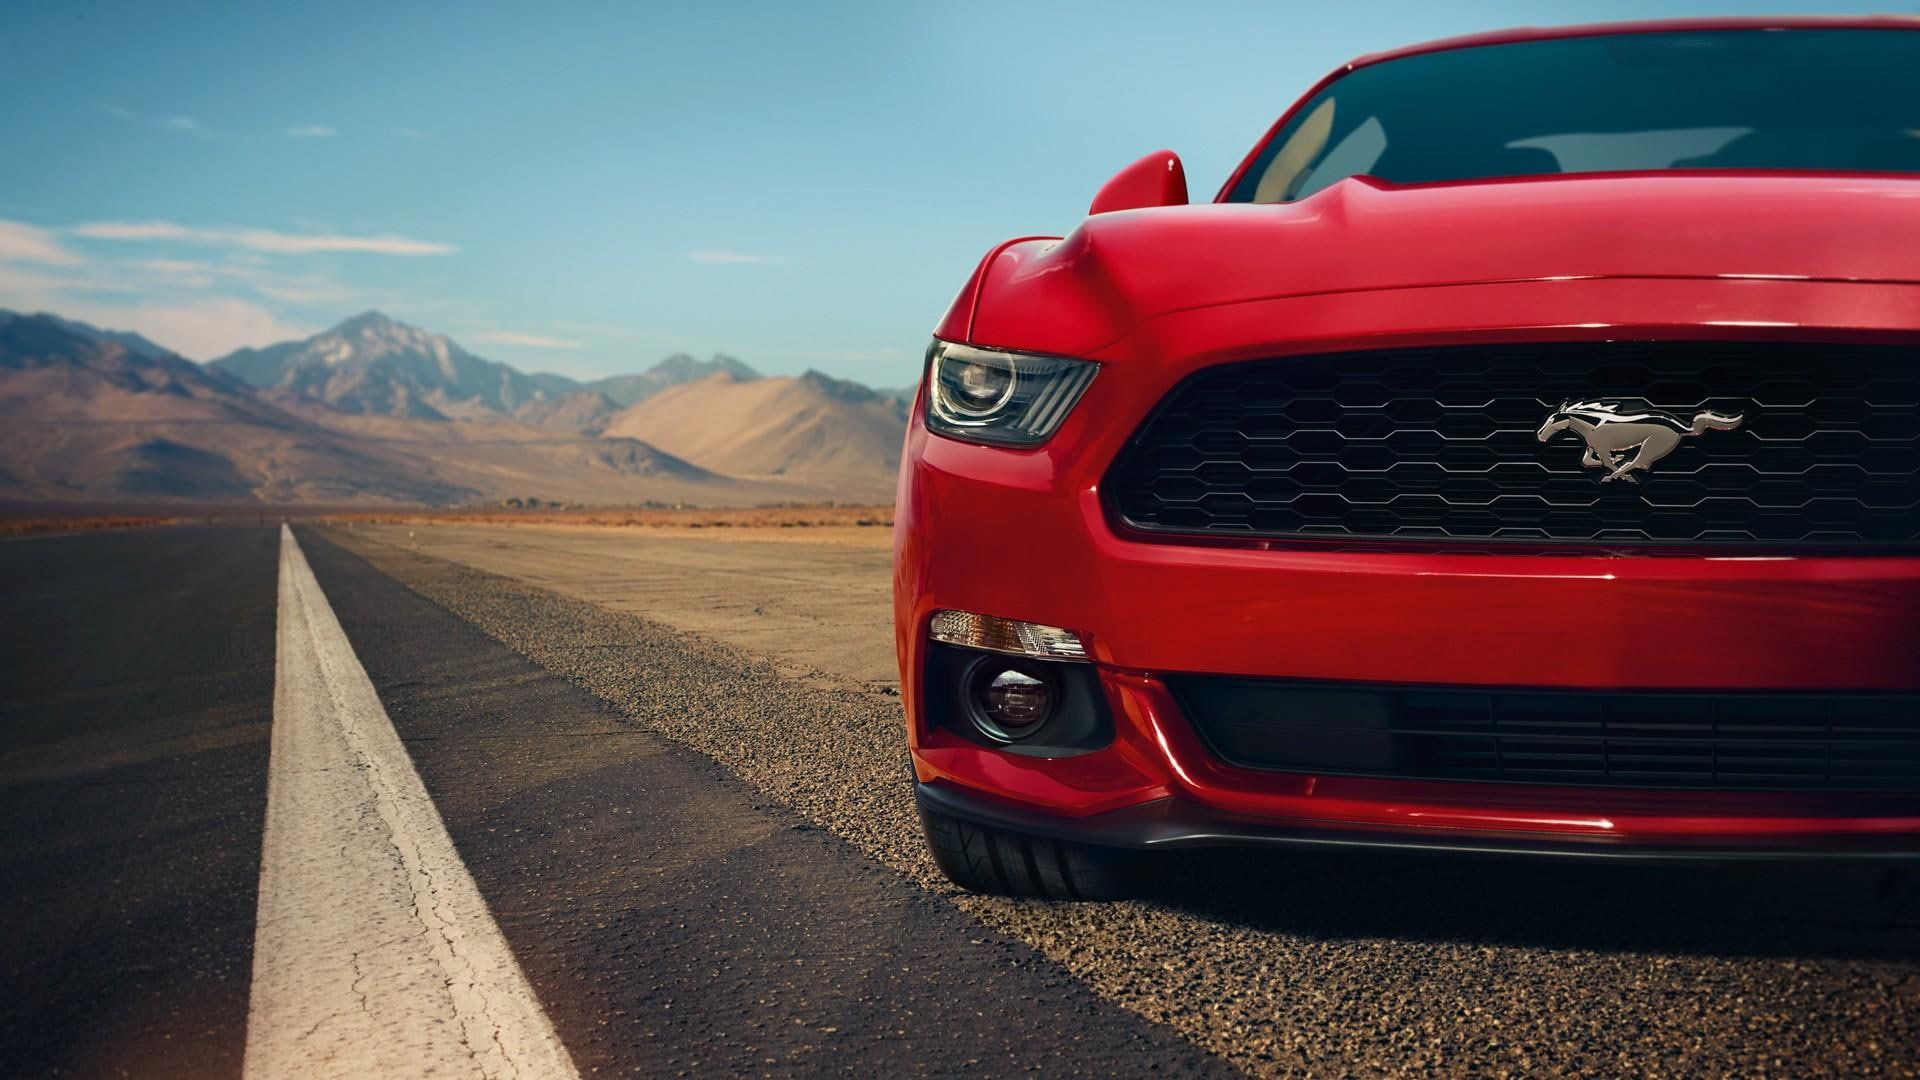 Ford Mustang Red Highway Car 1080p Wallpaper Hdwallpaper Desktop Ford Mustang Wallpaper Mustang Wallpaper Ford Mustang Gt